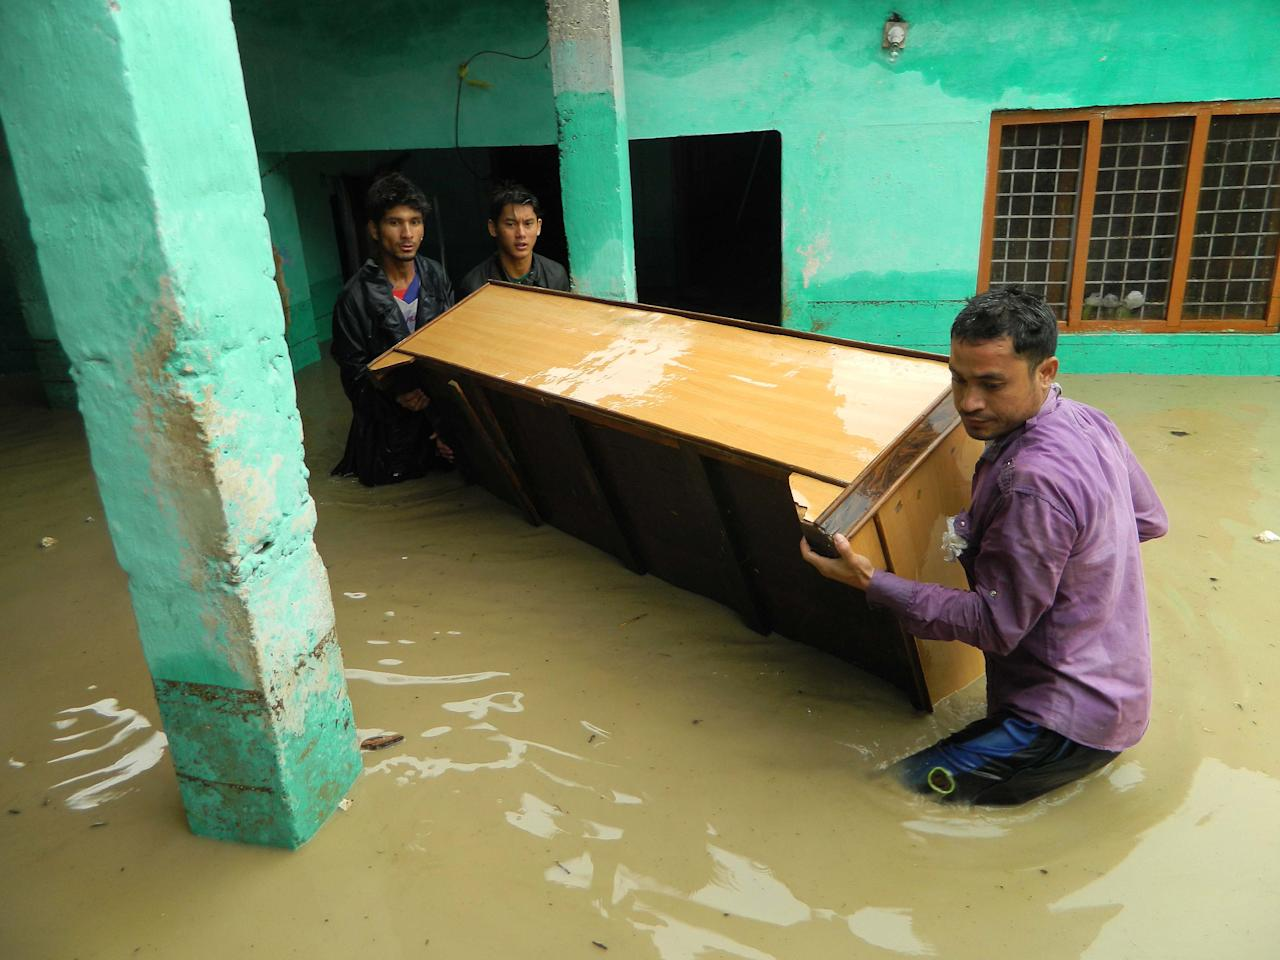 Indian people move furniture as homes floods due to the heavy rains in the northern state of Uttarakhand on June 17, 2013. Heavy rains lashed parts of north India June 17, resulting in the deaths of at least 26 people, as the annual monsoon covered the country nearly two weeks ahead of schedule, officials said.  AFP PHOTO        (Photo credit should read STR/AFP/Getty Images)